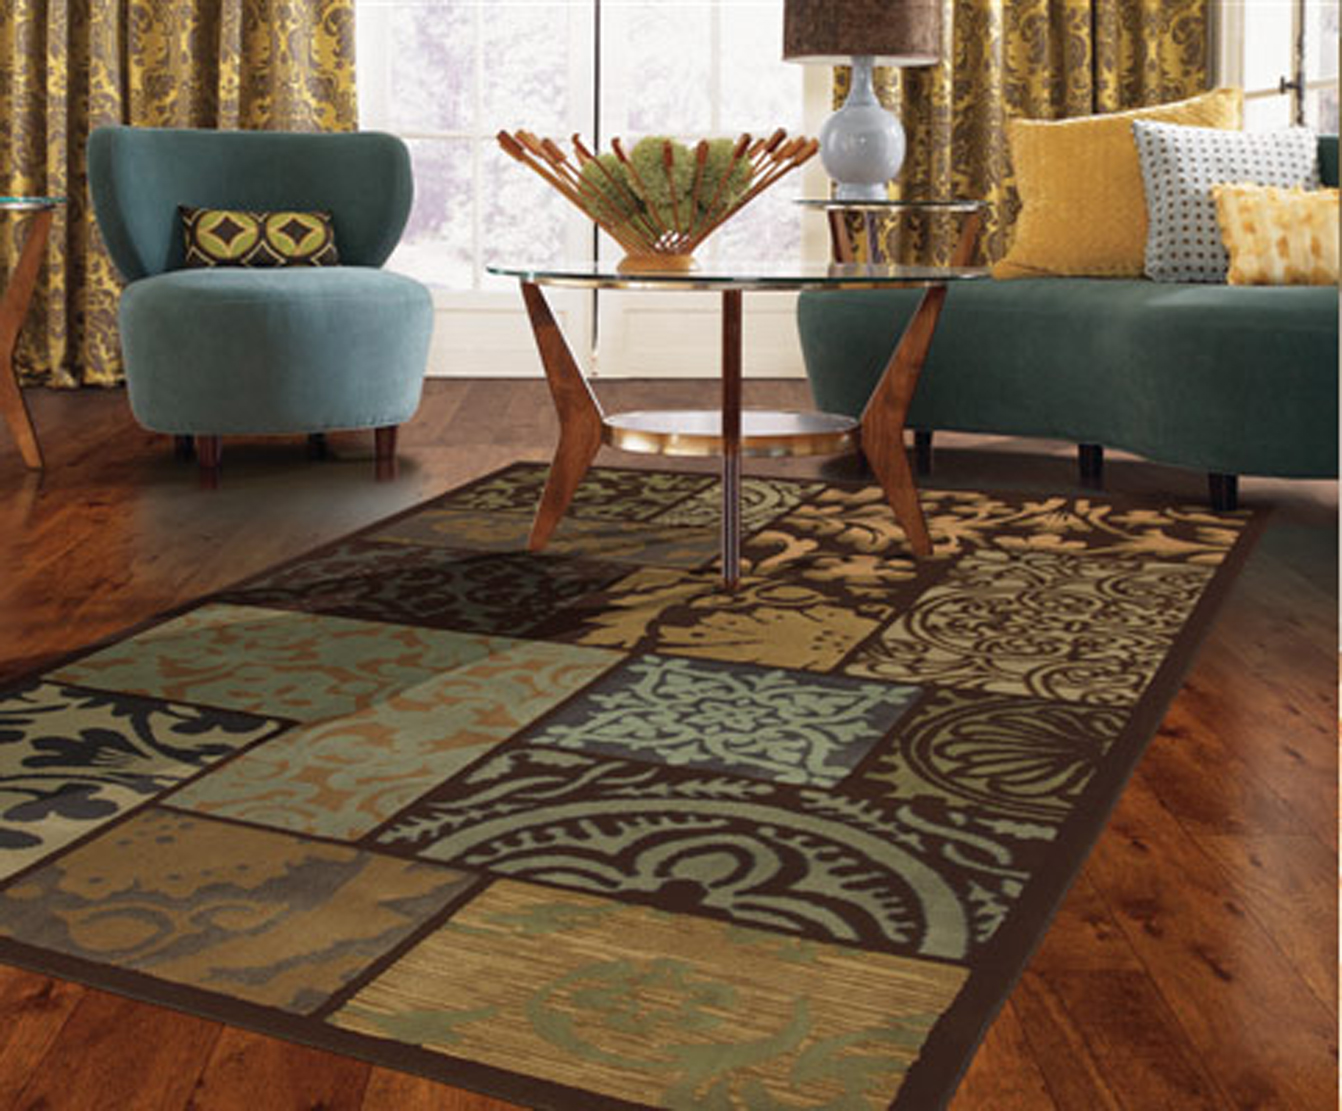 Area carpet and rugs oriental rugs camp hill pa for Area carpets and rugs